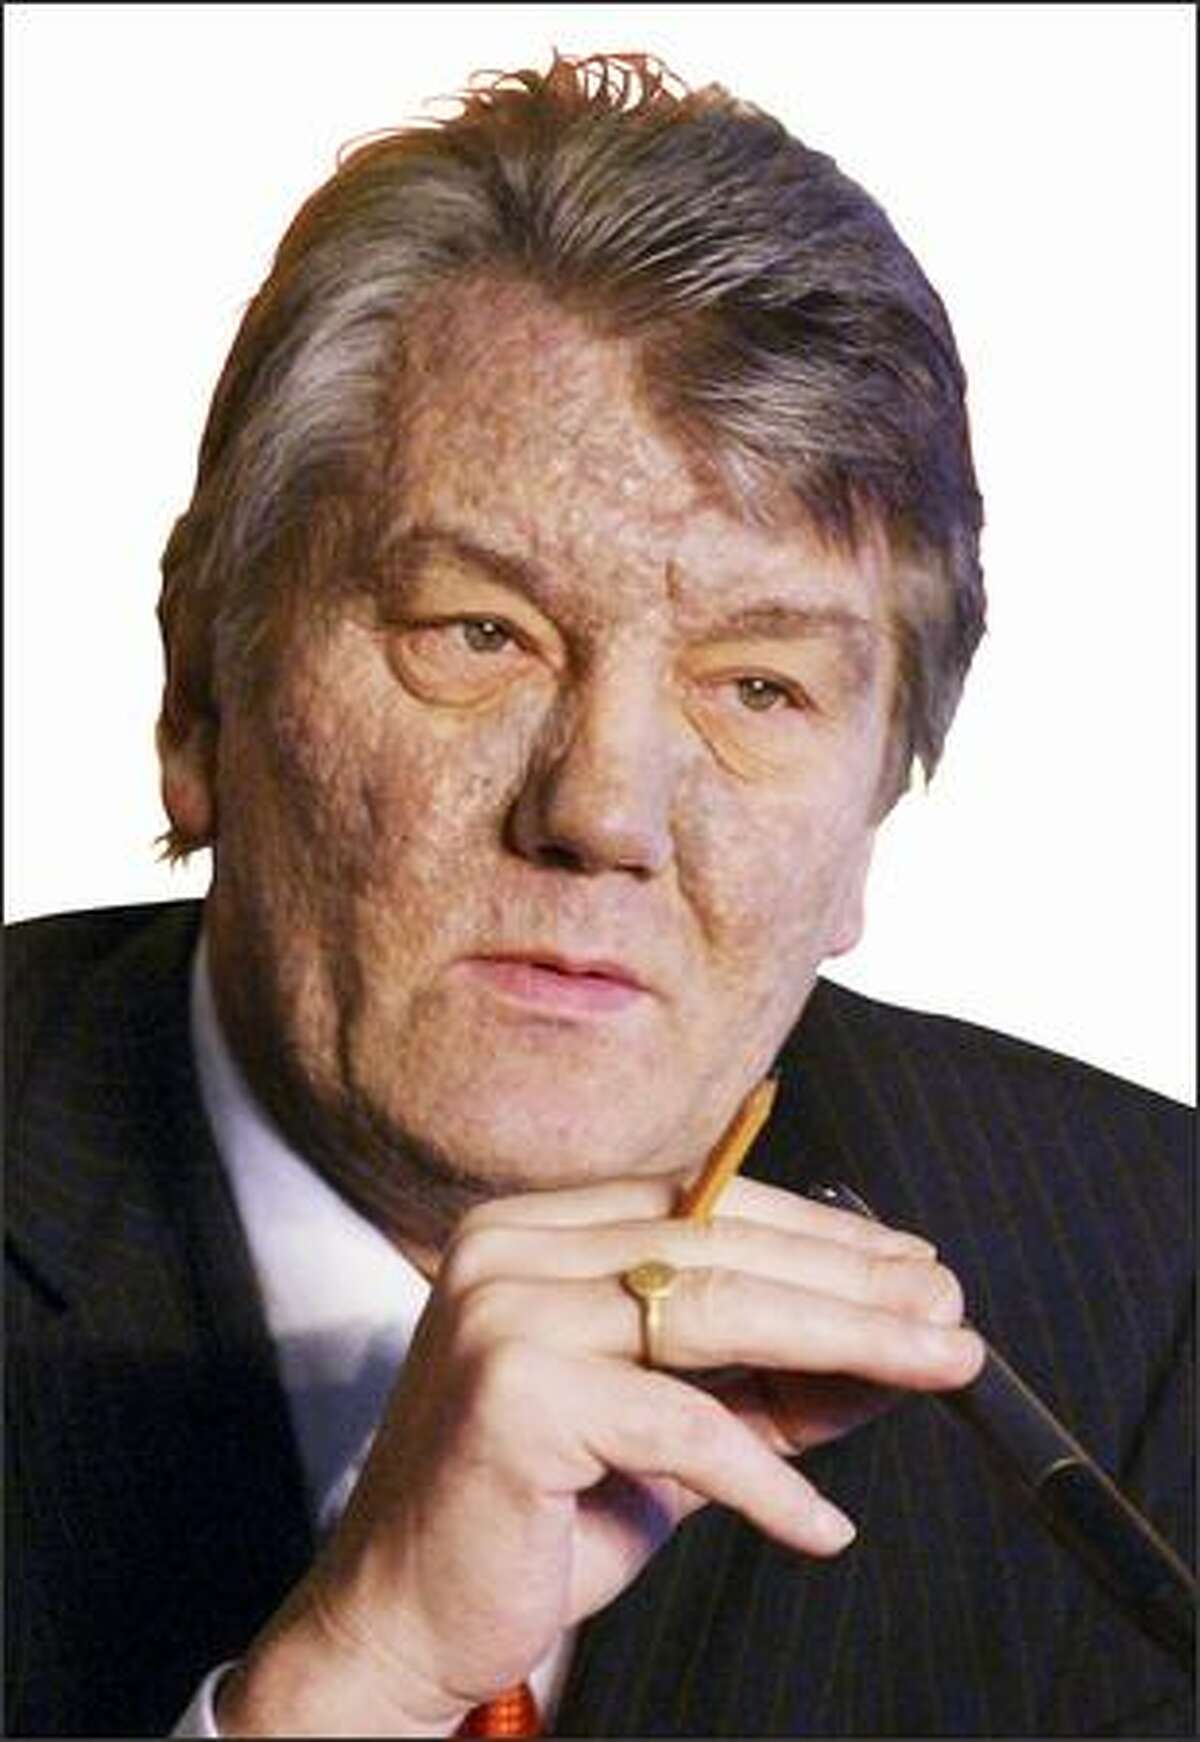 Ukrainian opposition presidential candidate Viktor Yushchenko, speaks to the media during a press conference in Kiev, Ukraine, Thursday, Dec. 16, 2004. Yushchenko said Thursday that he is sure he was poisoned by the Ukrainian government, and for the first time pinpointed the time and place where he believed he was poisoned with dioxin: a Sept. 5 lunch with the head of the Ukrainian security service and his deputy. (AP Photo/Efrem Lukatsky)